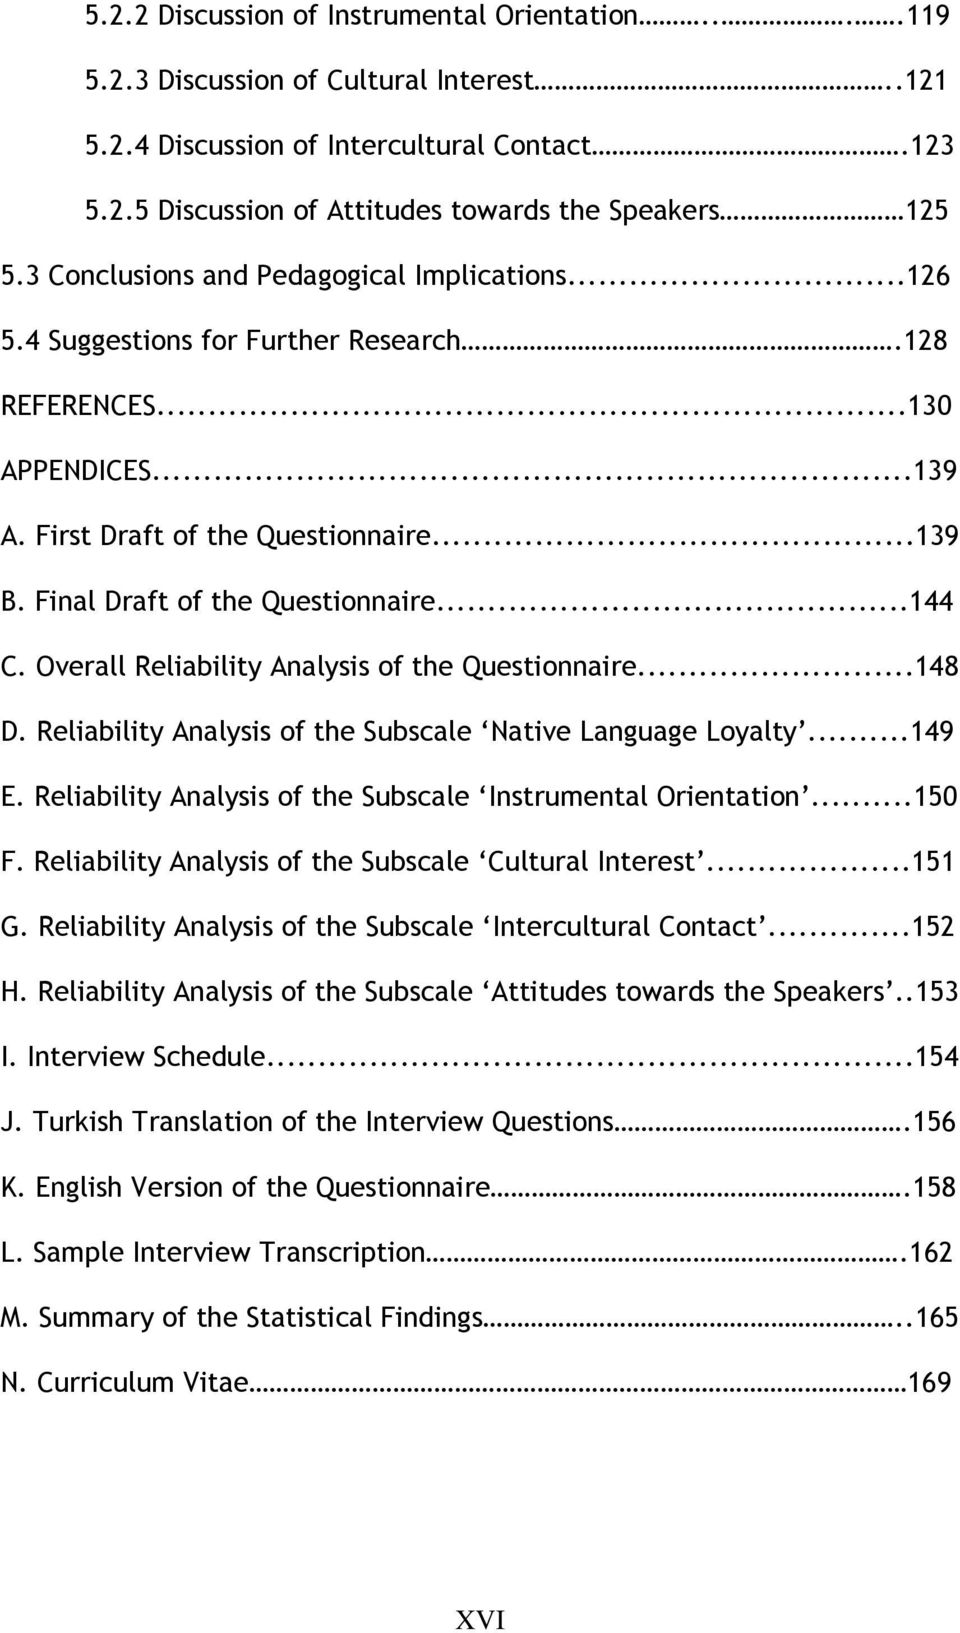 Final Draft of the Questionnaire...144 C. Overall Reliability Analysis of the Questionnaire...148 D. Reliability Analysis of the Subscale Native Language Loyalty...149 E.